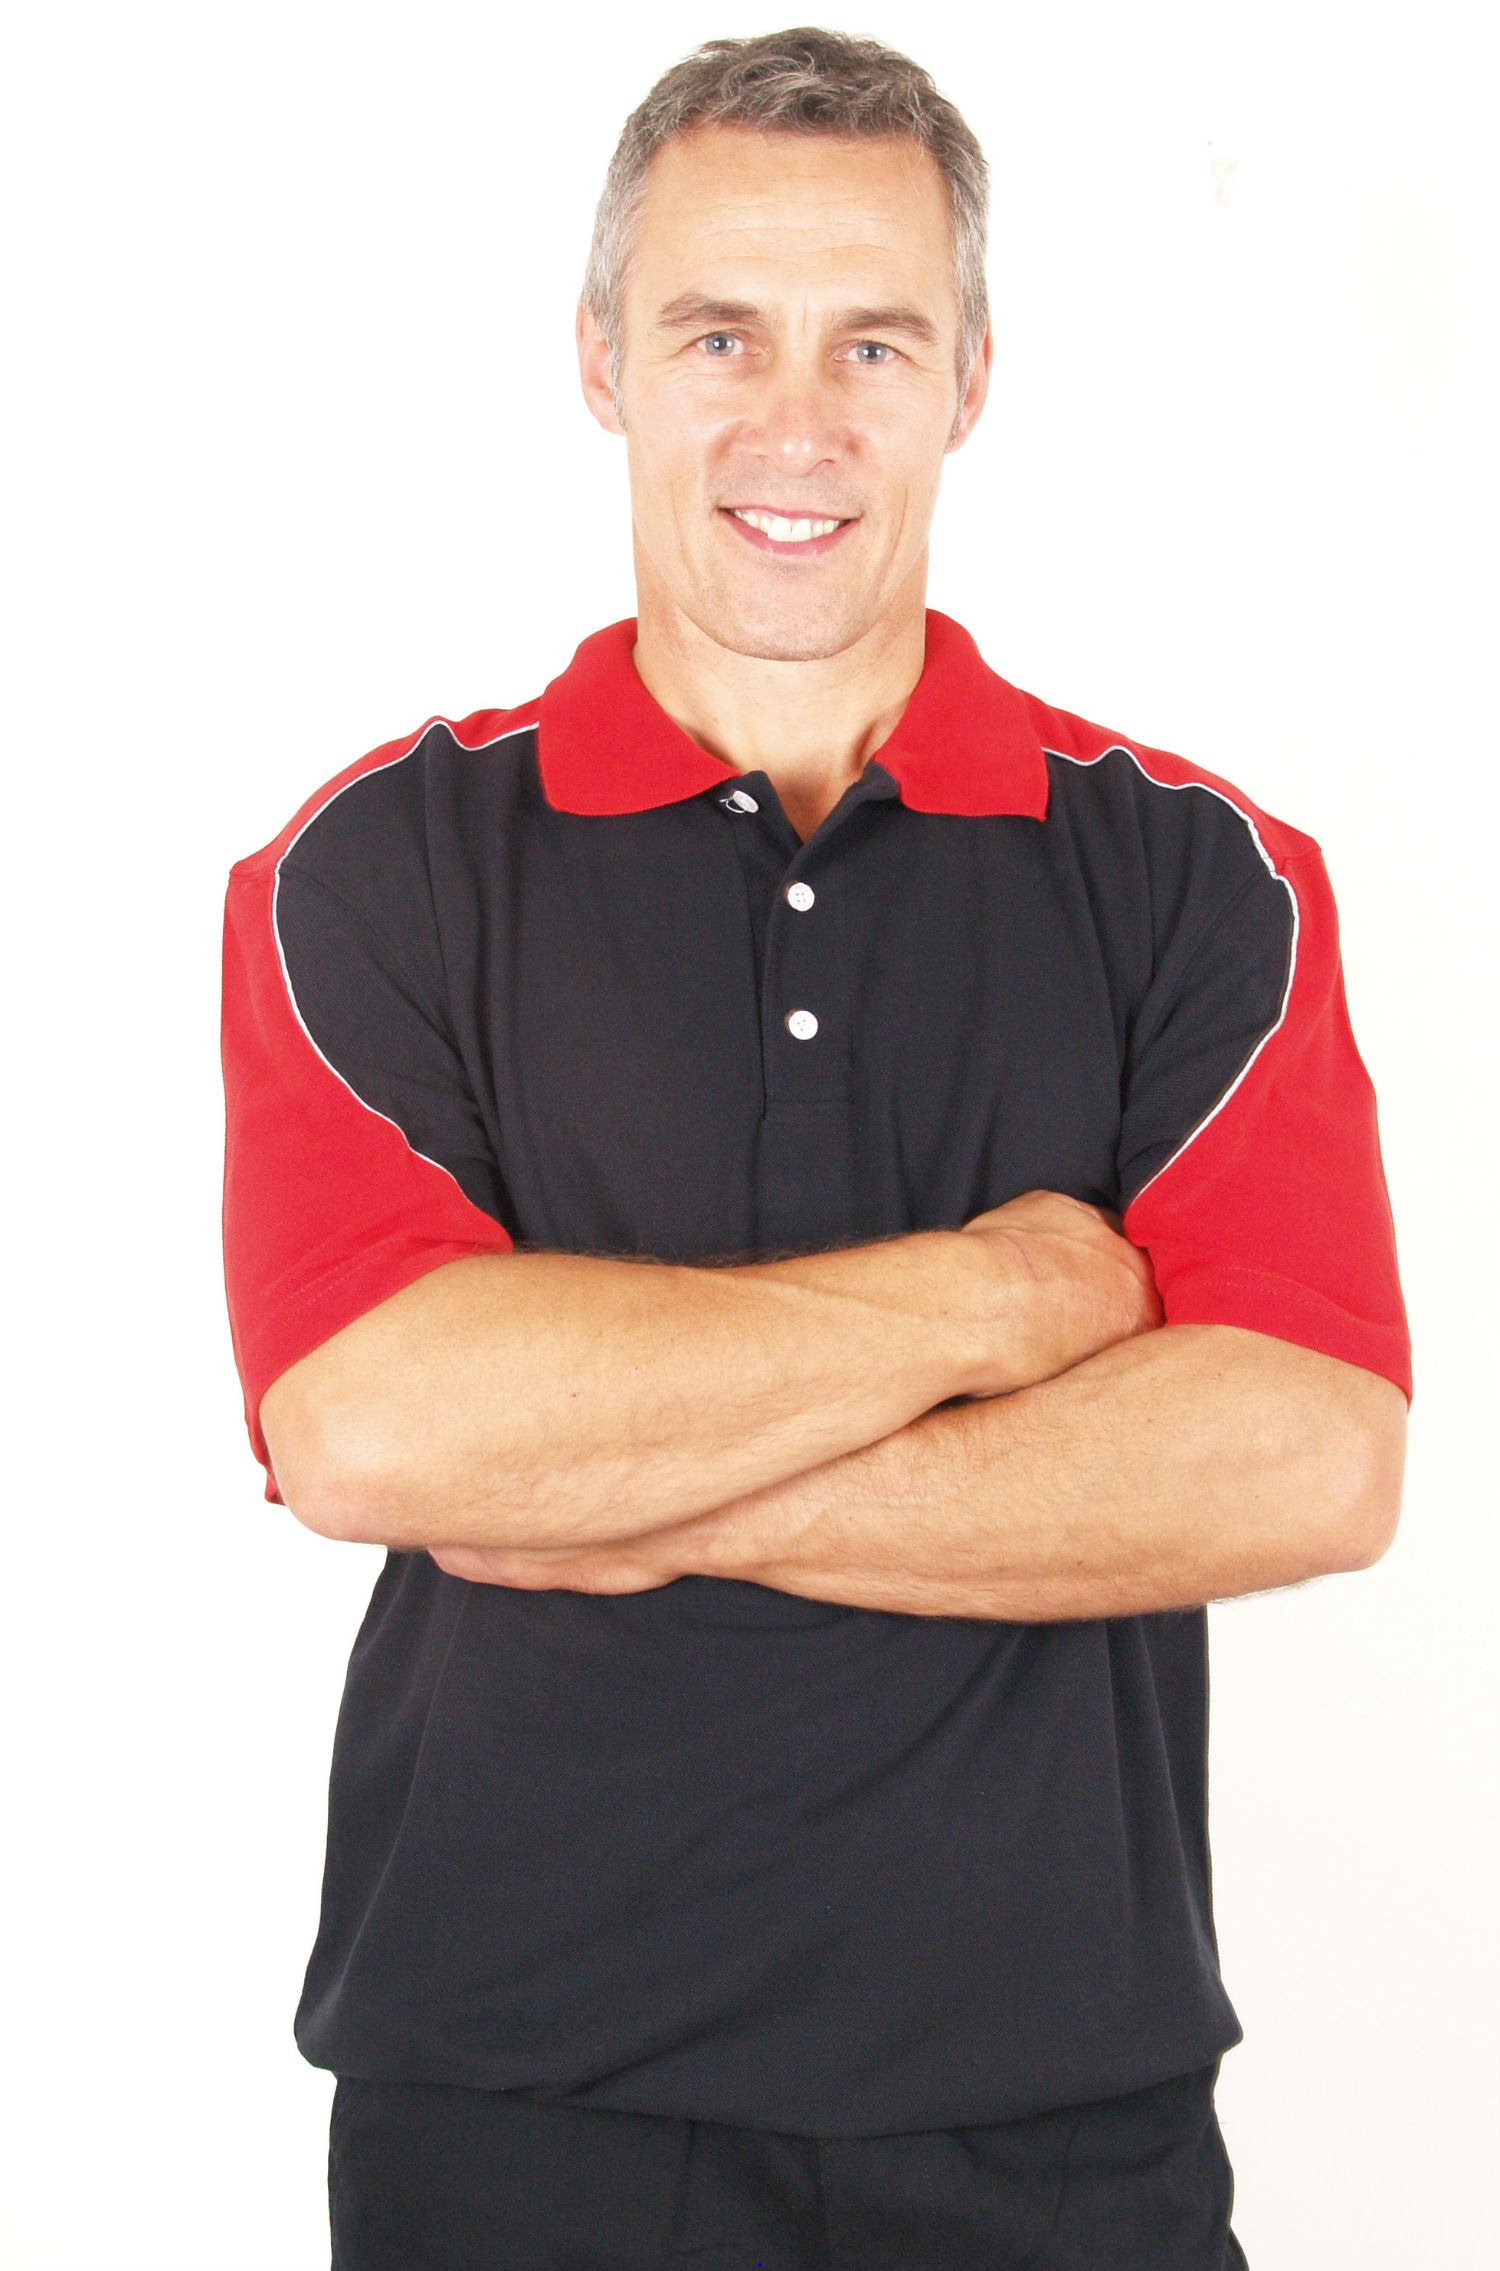 100 cotton polo shirt for work team sports unisex style 2